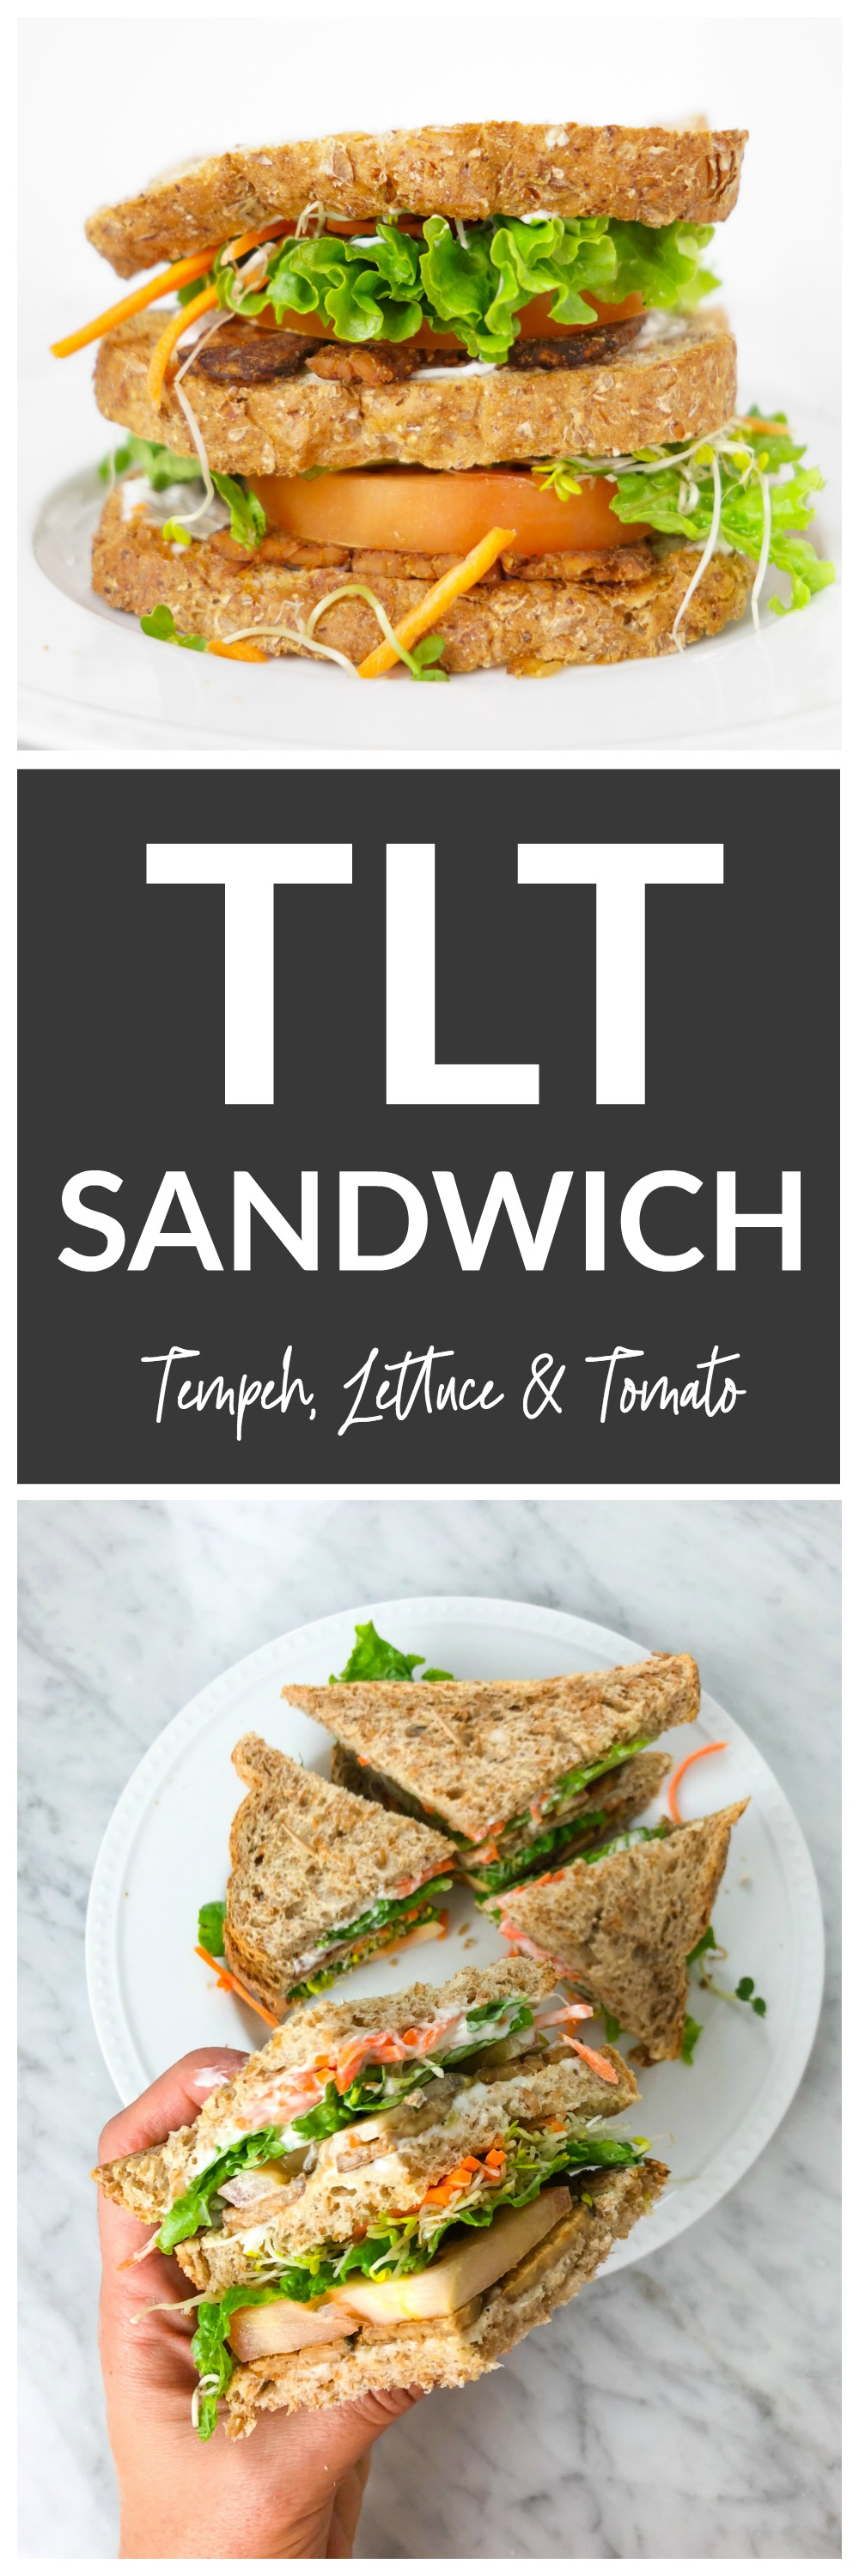 TLT Sandwich - tempeh, lettuce and tomato